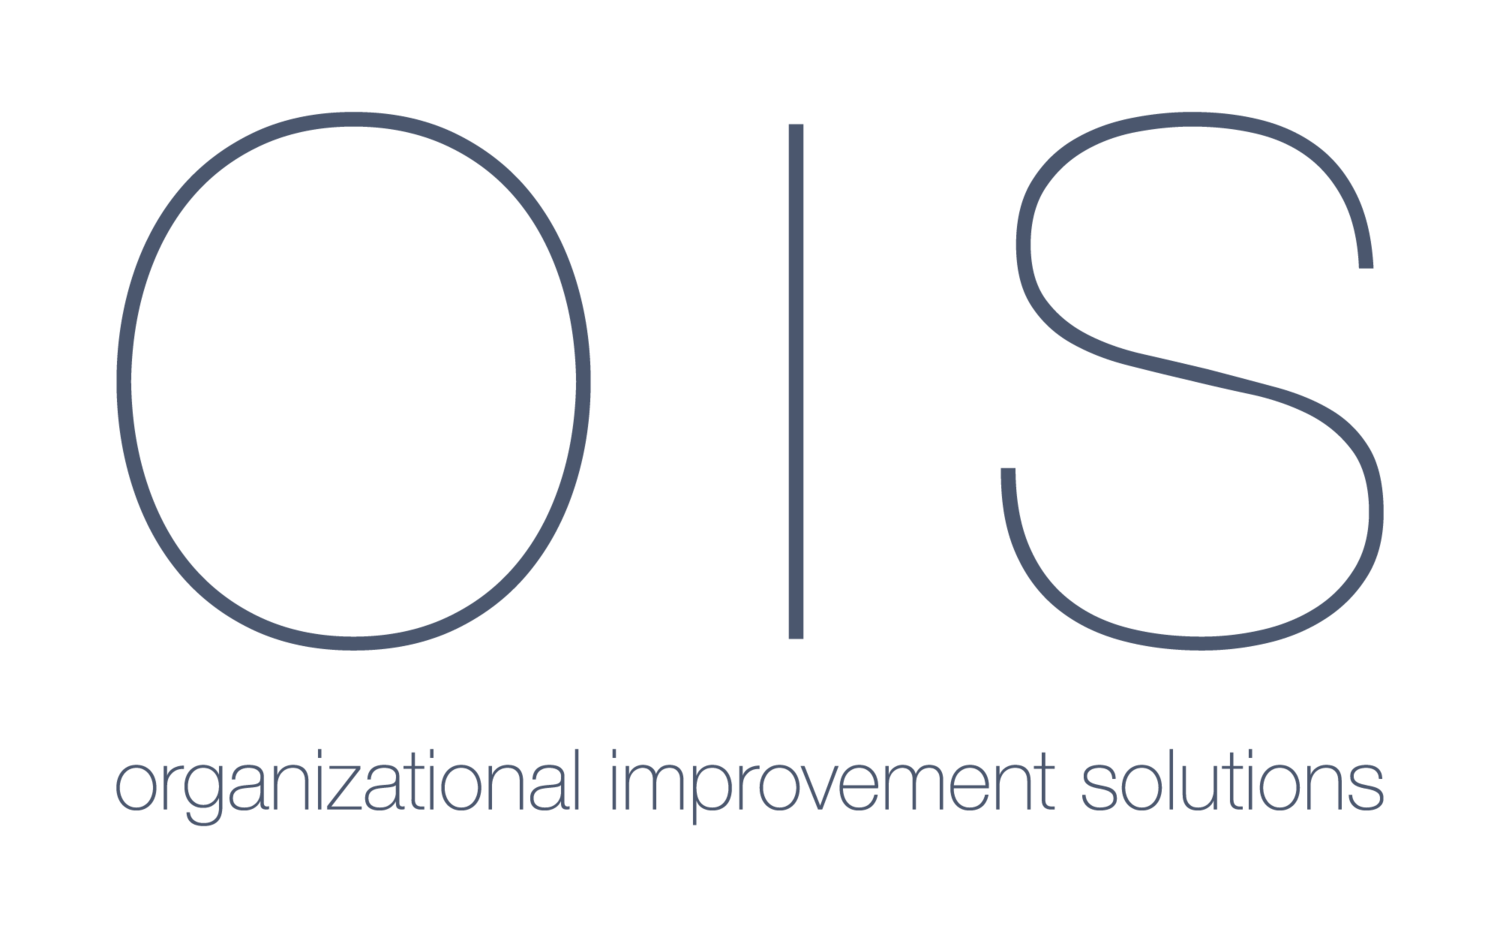 Organizational Improvement Solutions